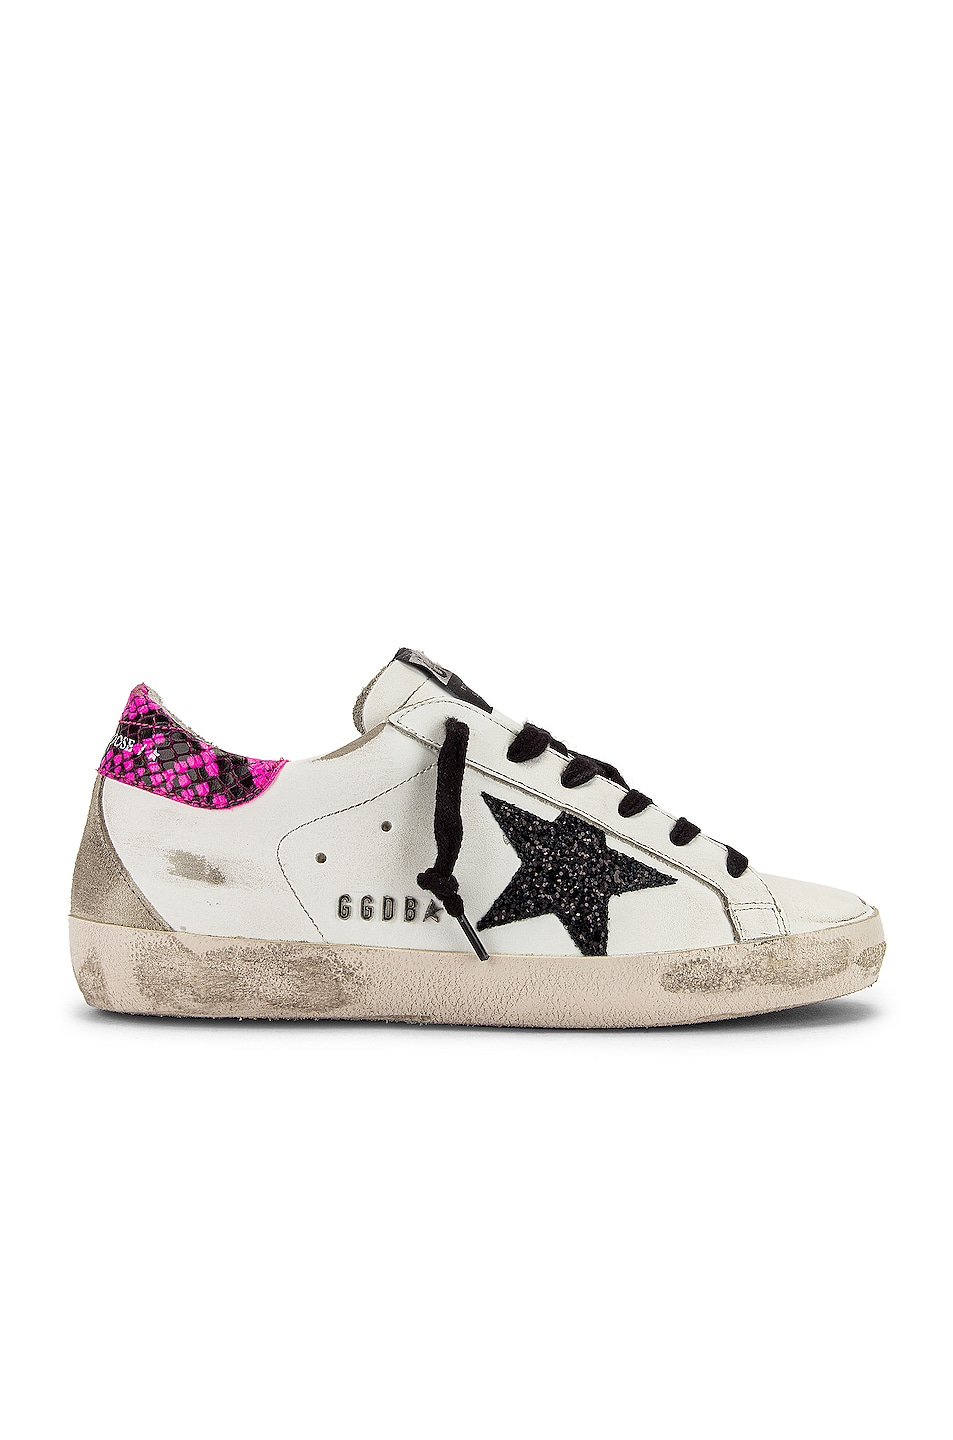 Image 1 of Golden Goose Superstar Sneaker in White, Fuchsia Python & Glitter Star